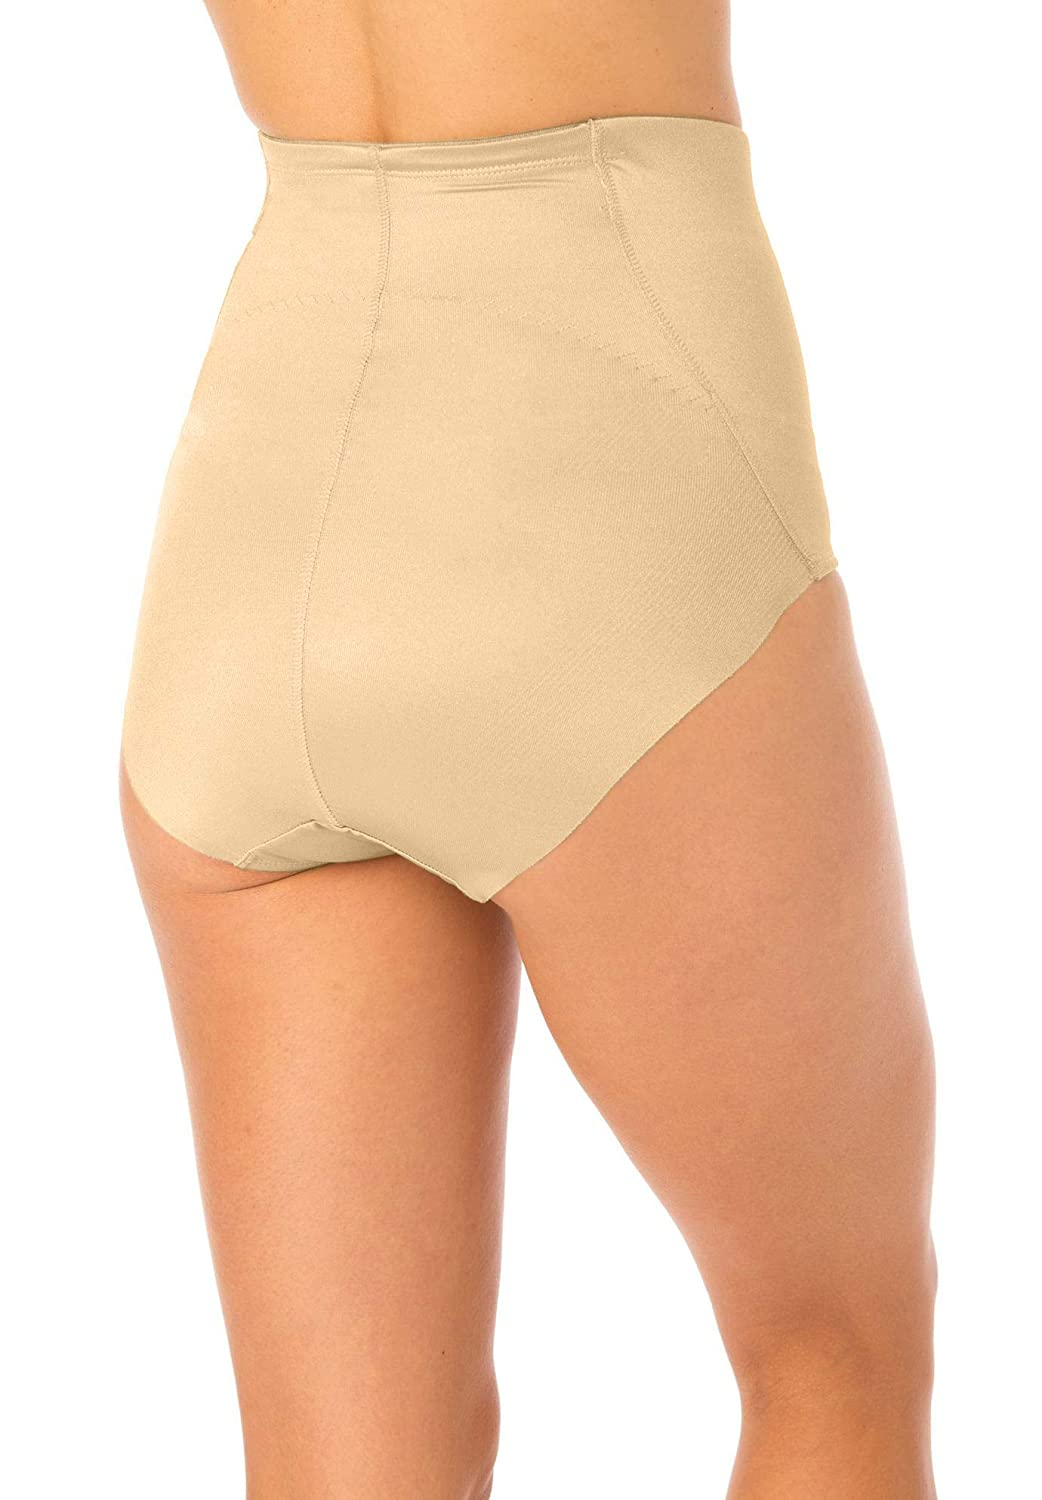 Secret Solutions Womens Plus Size High Waist Shaping Brief